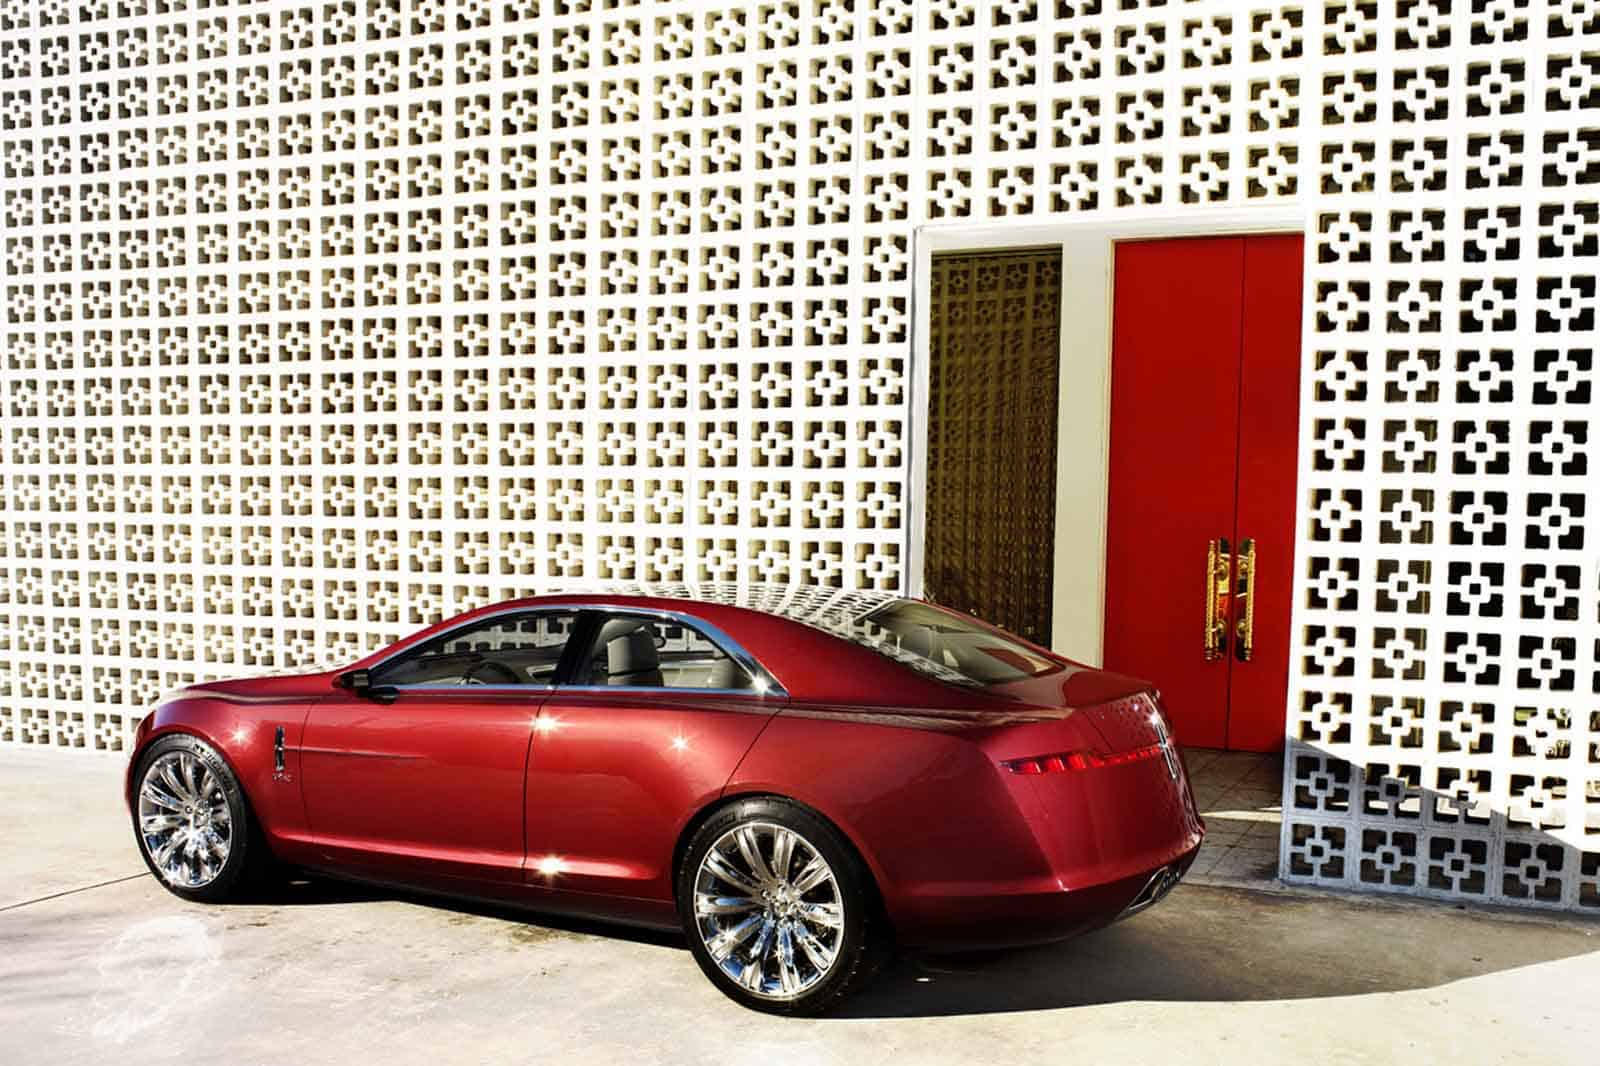 https://www.formtrends.com/wp-content/uploads/2015/03/lincoln-mkr_concept_2007_05.jpg